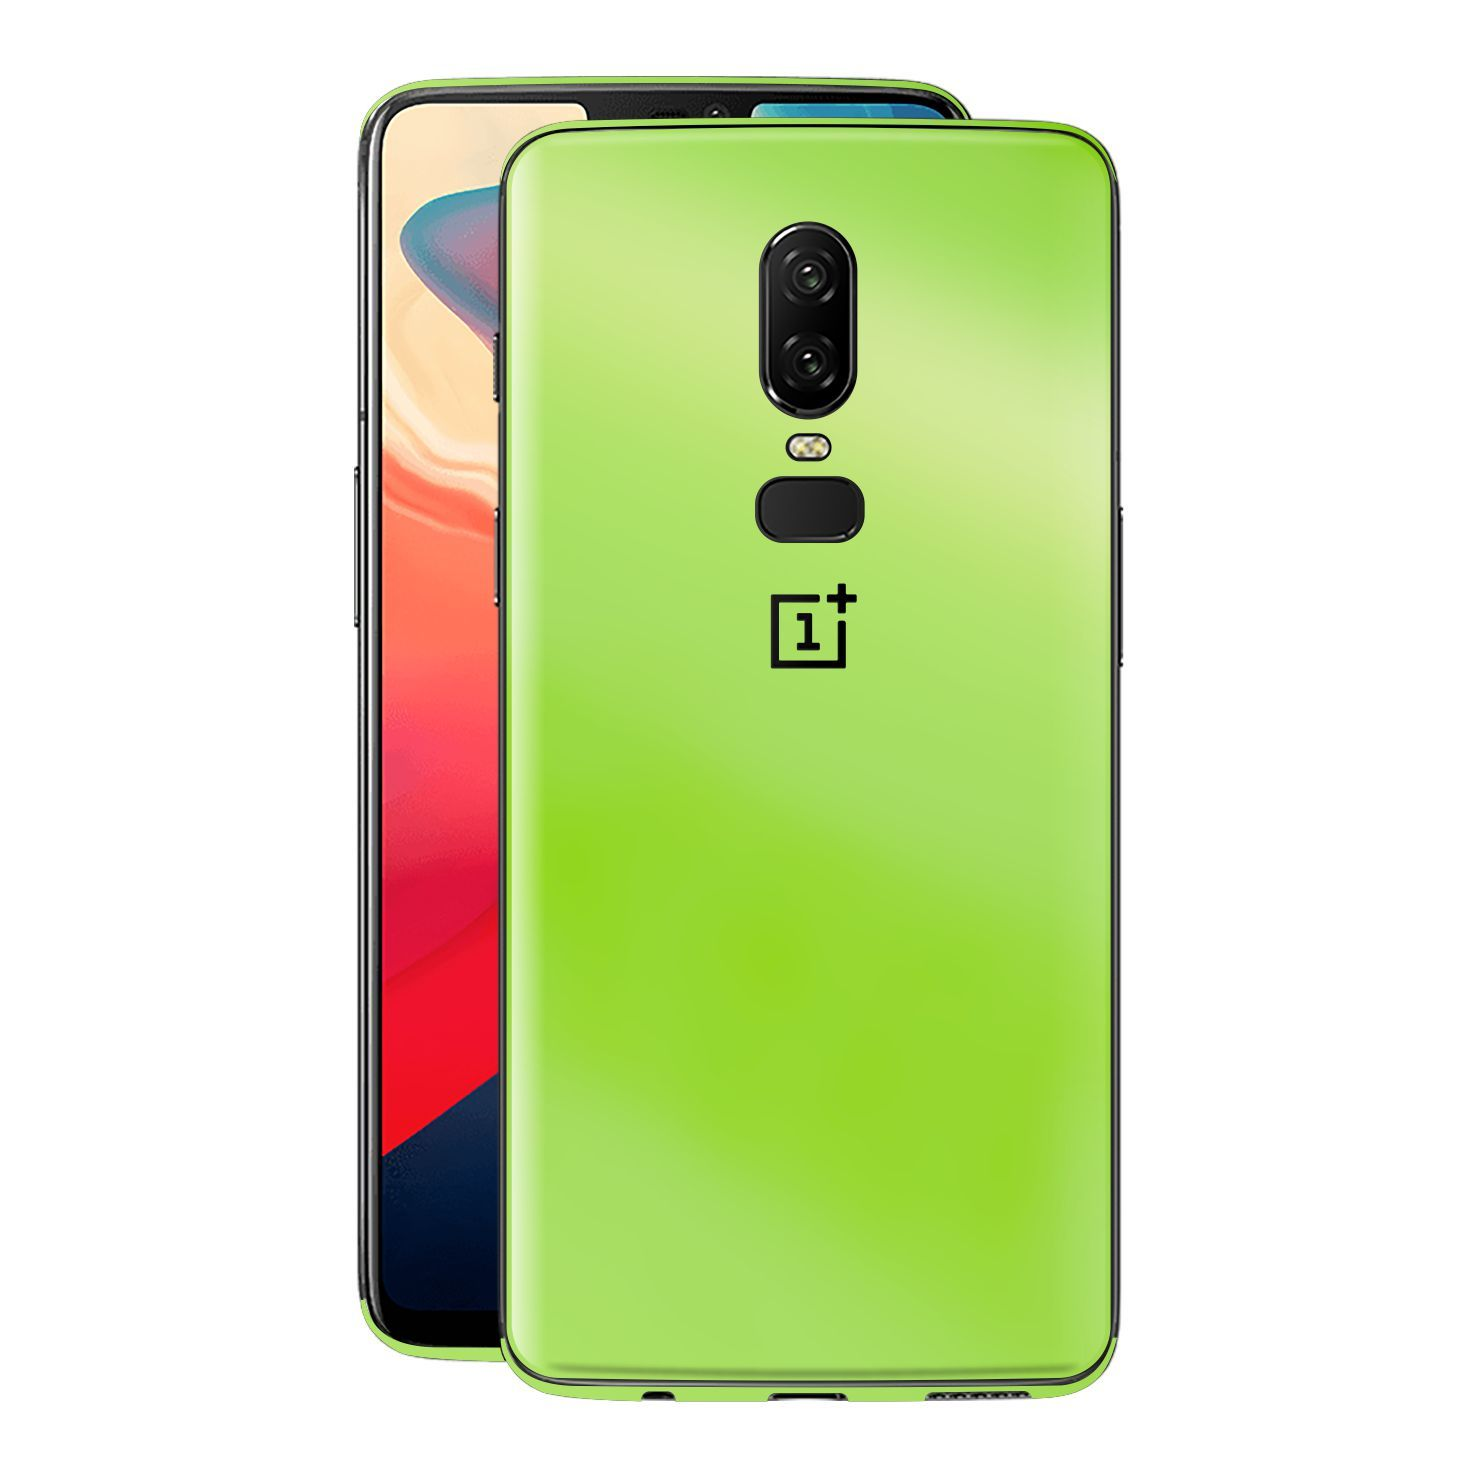 OnePlus 6 Apple Green Pearl Gloss Finish Skin Wrap Decal Cover by EasySkinz